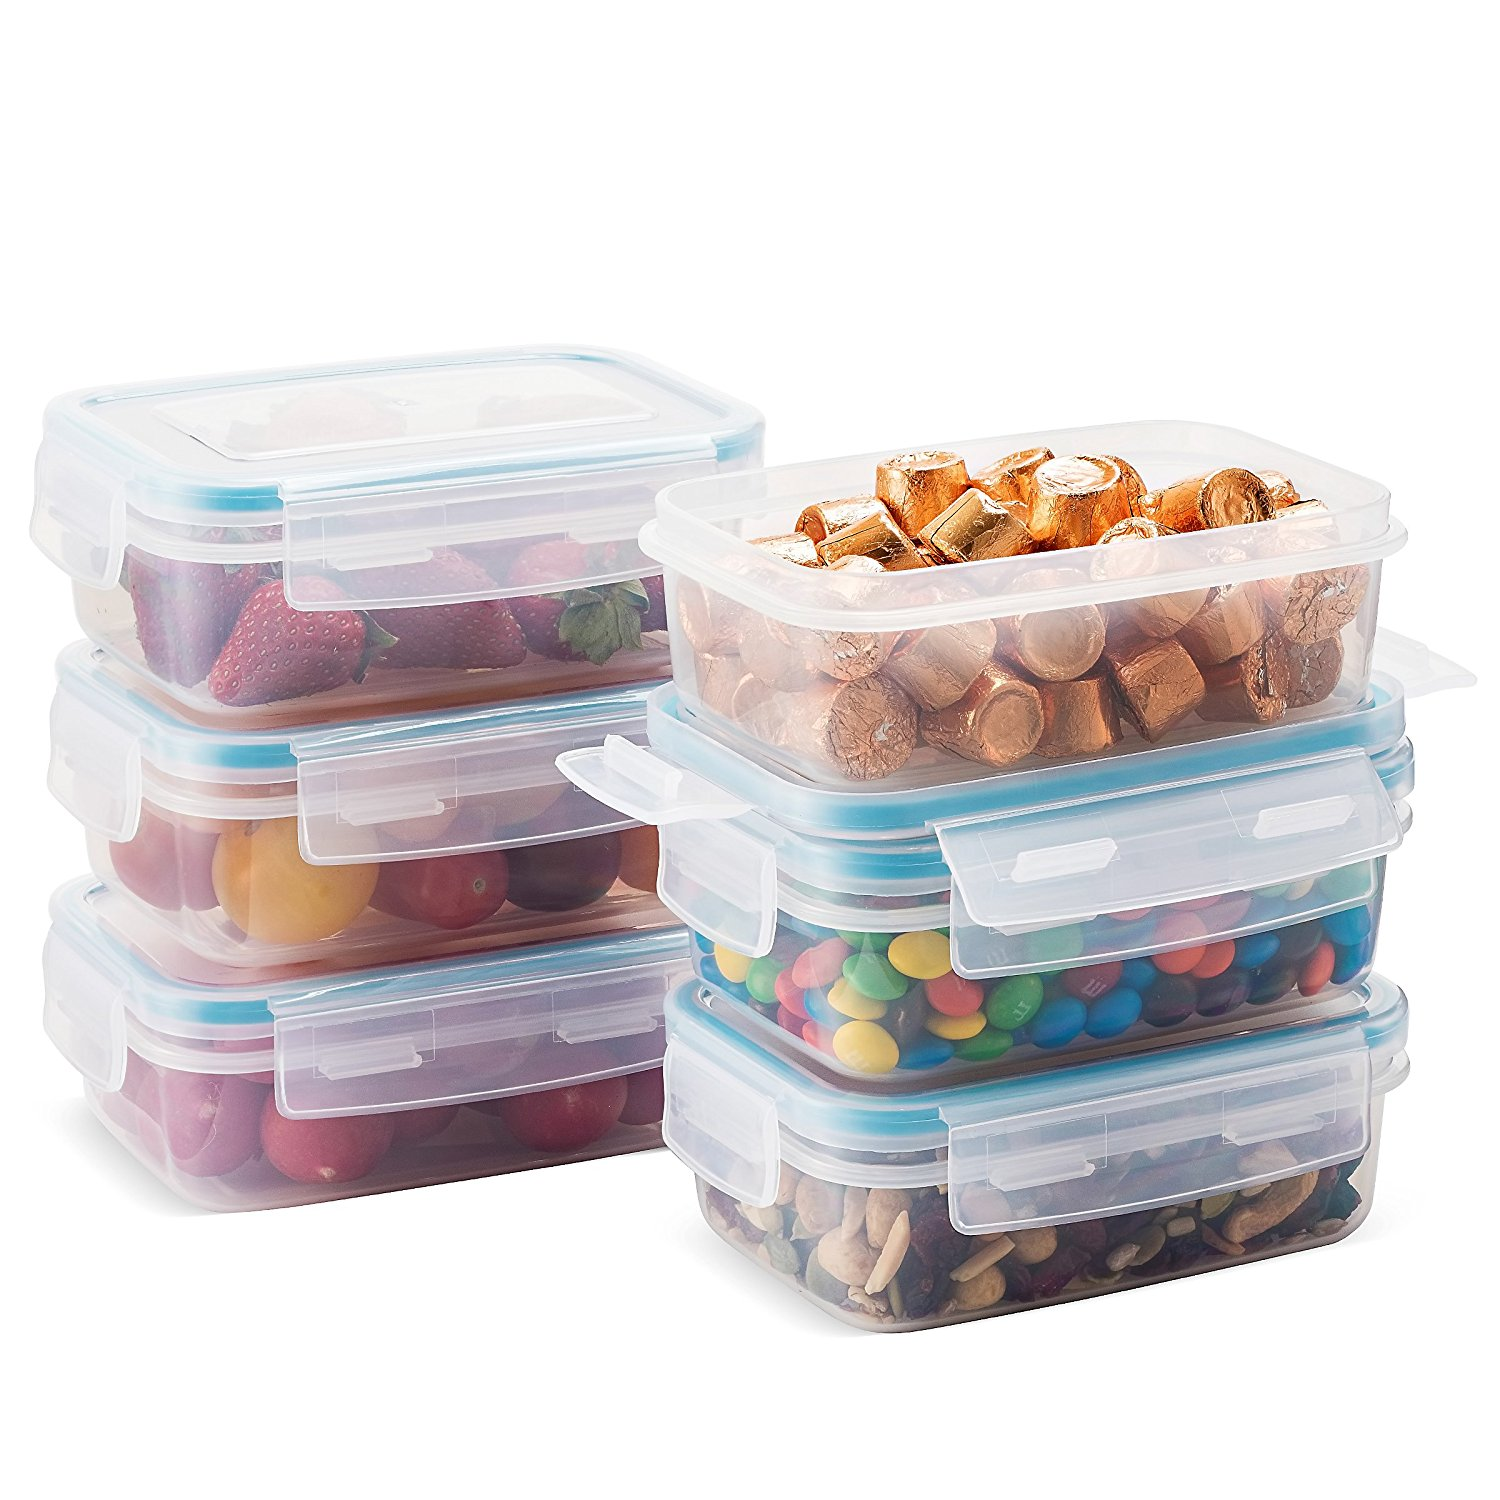 Komax Biokips Food Storage Snack Container 15oz. (set Of 6)   Airtight,